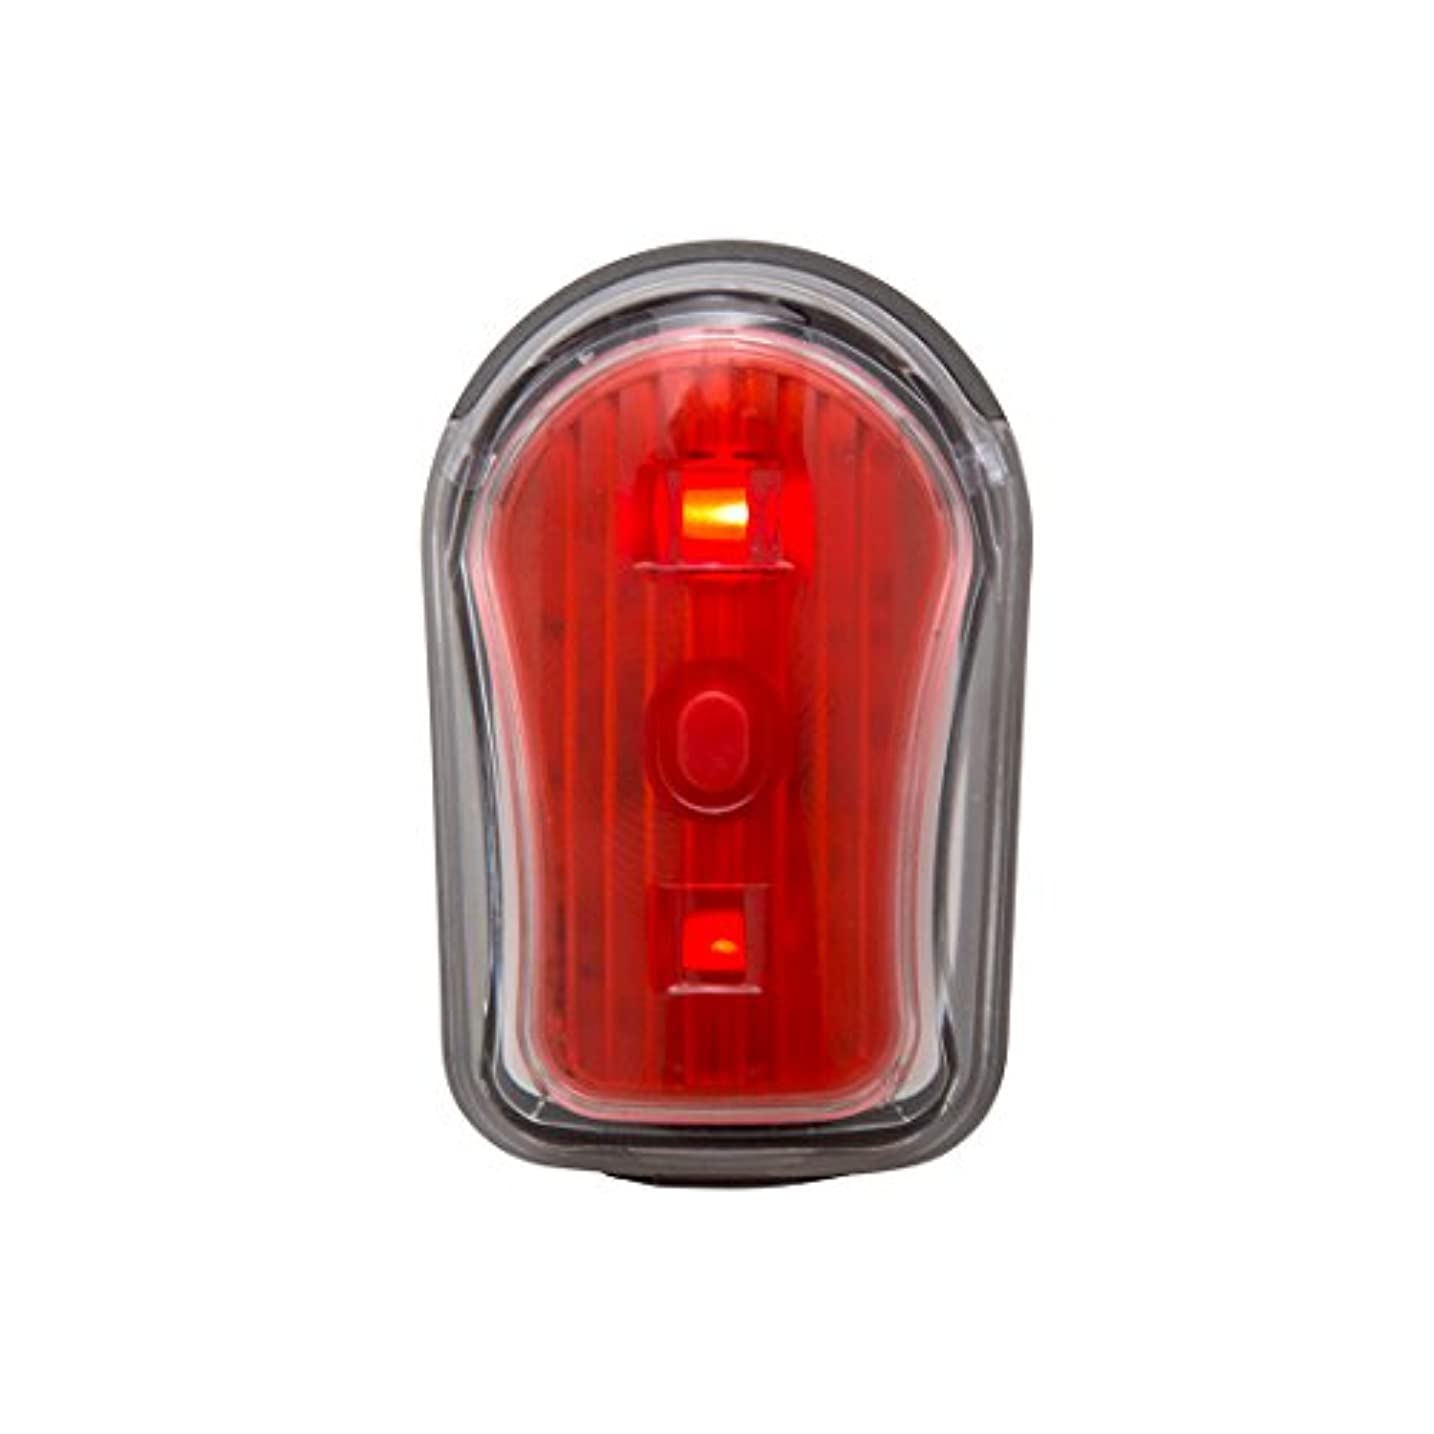 ホーム熱意浅いPlanet Bike Blinky Superflash Micro USB 0.5W Tail Light by Planet Bike